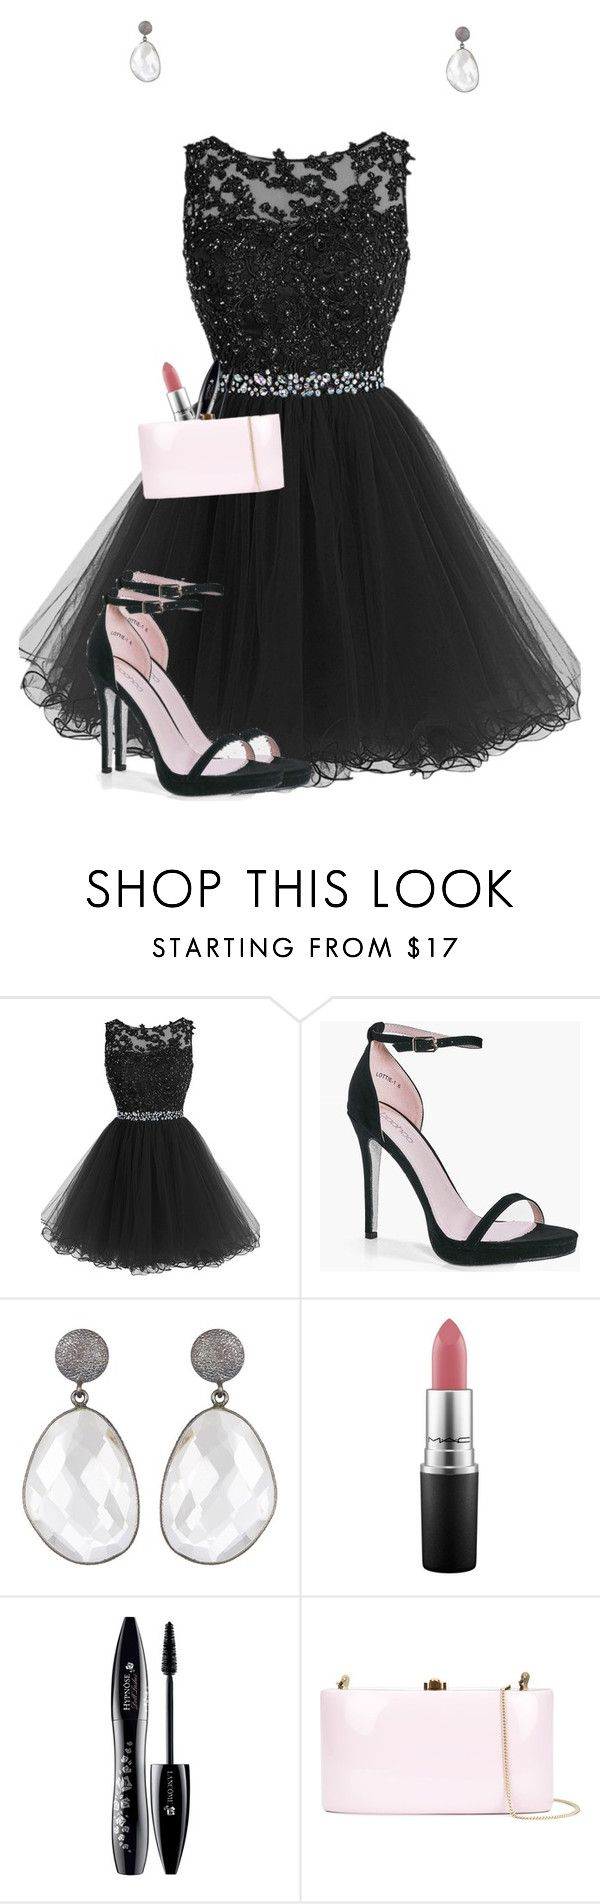 """""""Invert color challenge!"""" by jackrabbit0823 ❤ liked on Polyvore featuring Boohoo, MAC Cosmetics, Lancôme and Rocio"""